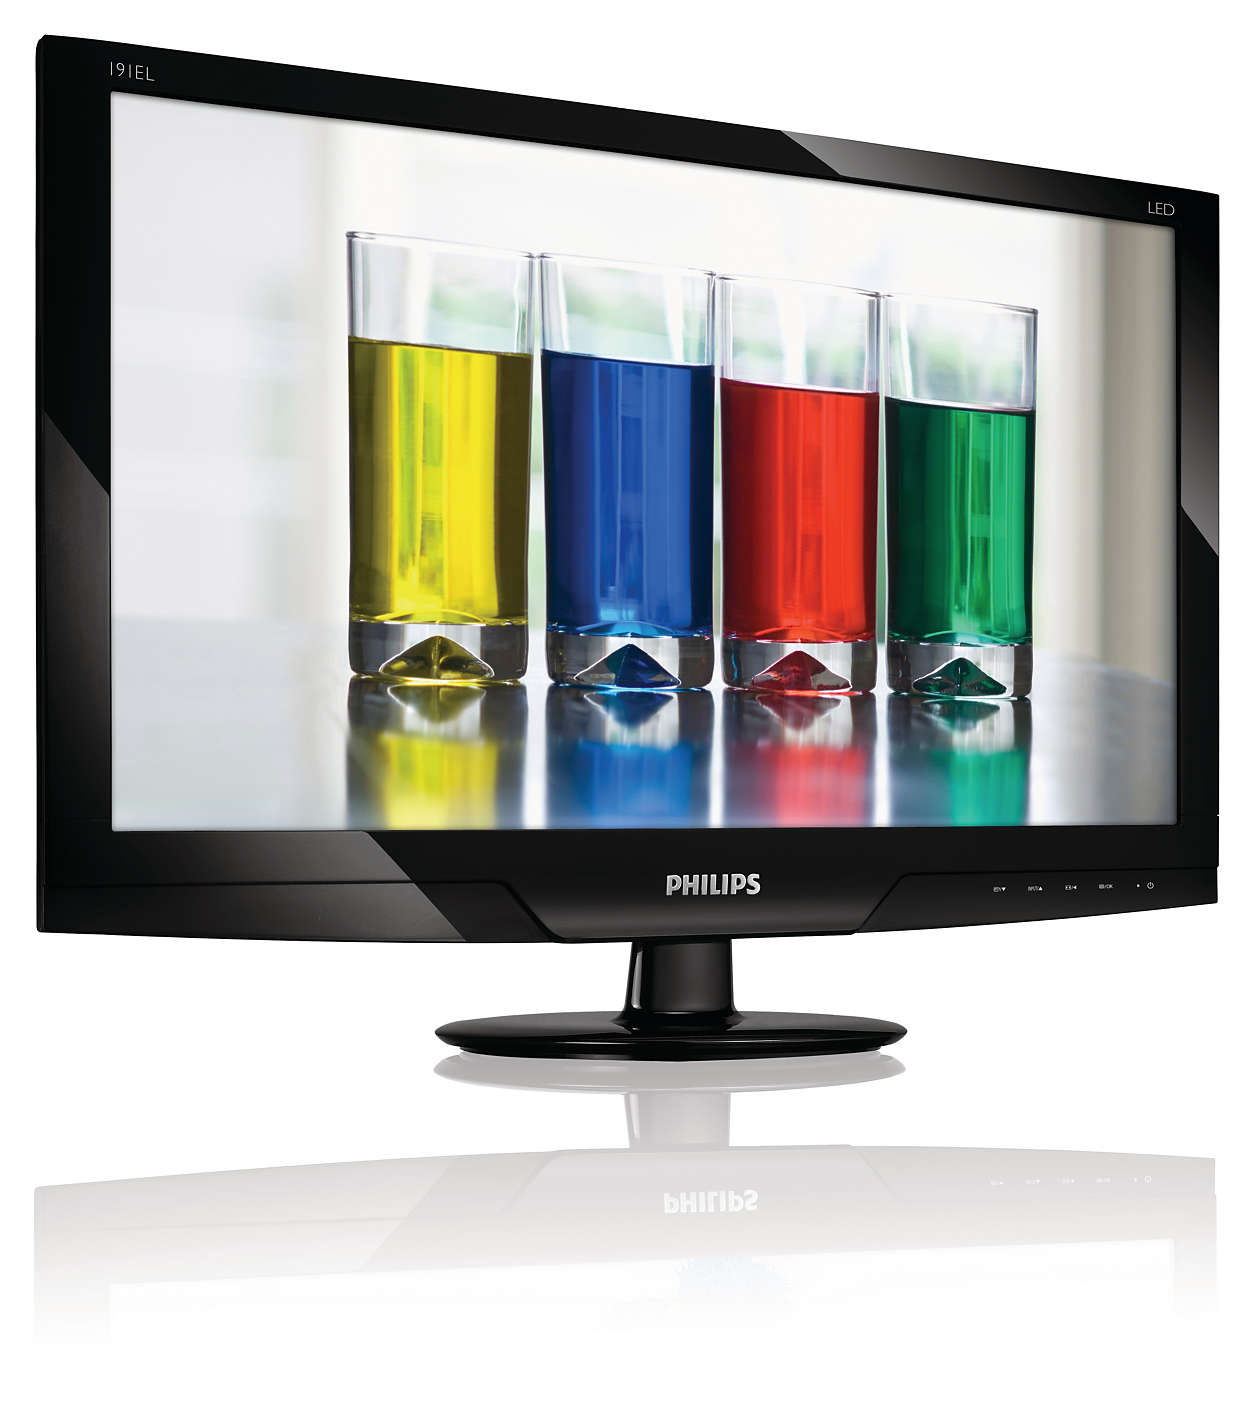 Slim, attractive LED display with natural colors